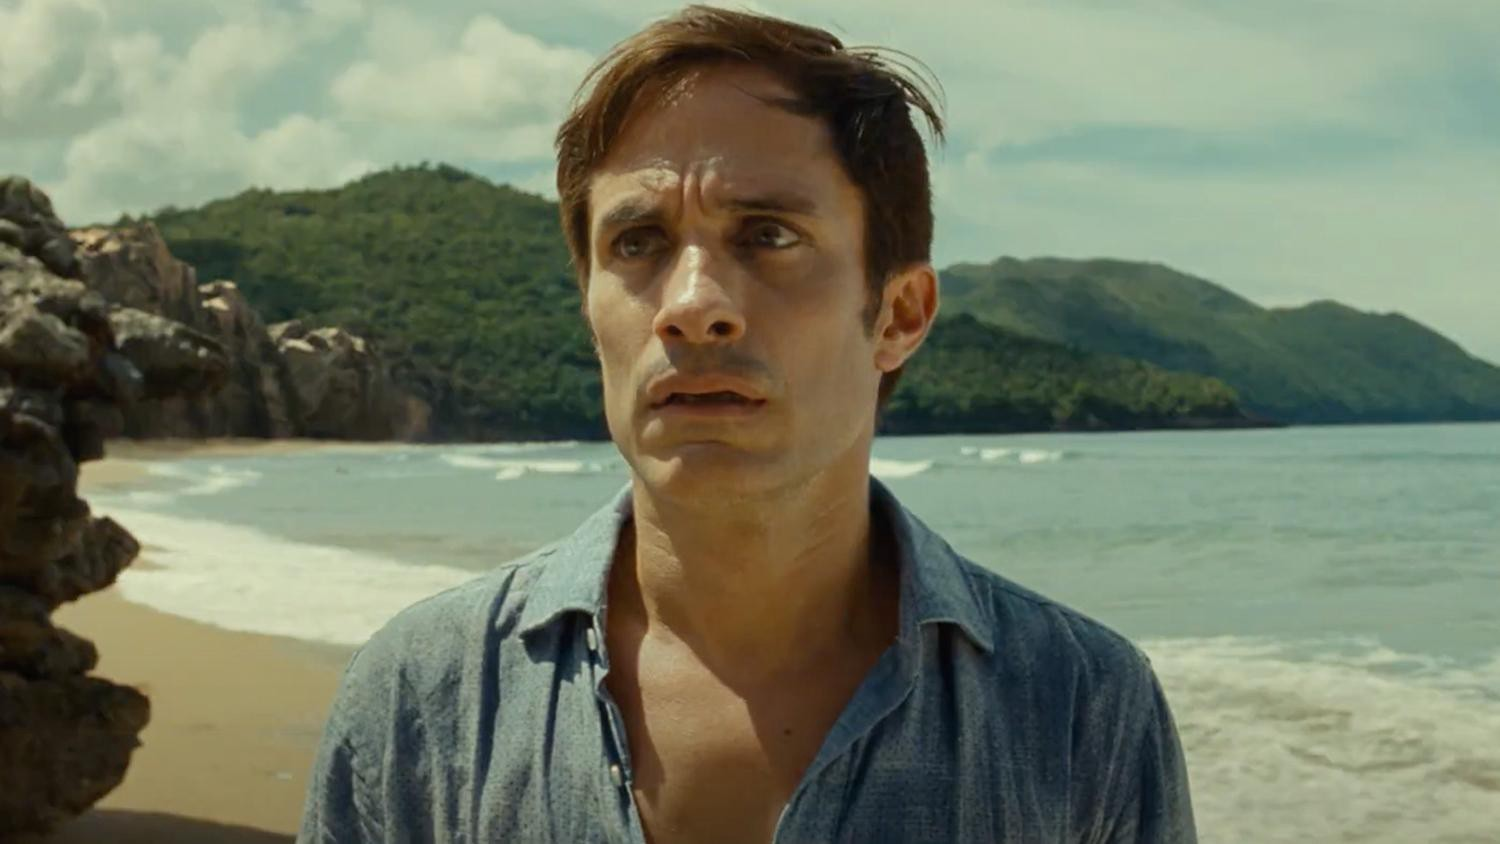 A man stares in disbelief on a beach.